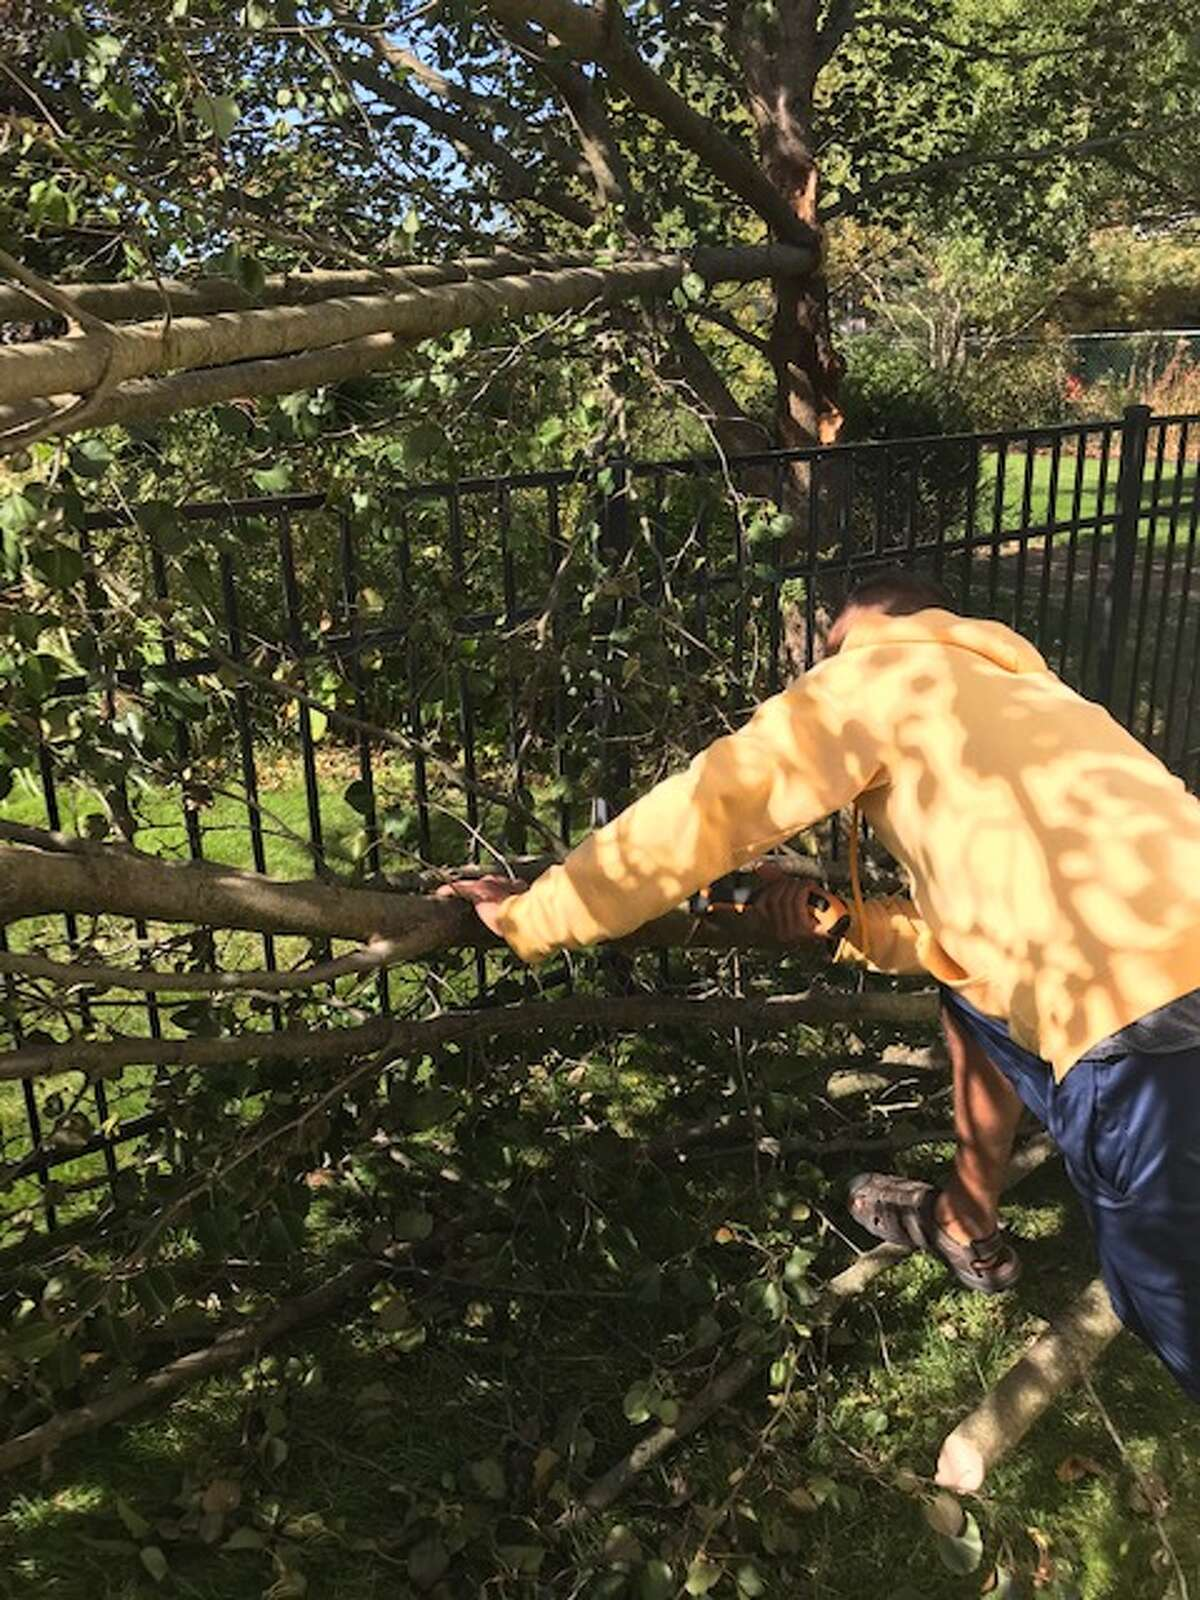 My neighbor Sumit had only a small hand saw and toiled together with his neighbor to remove the tree limbs.